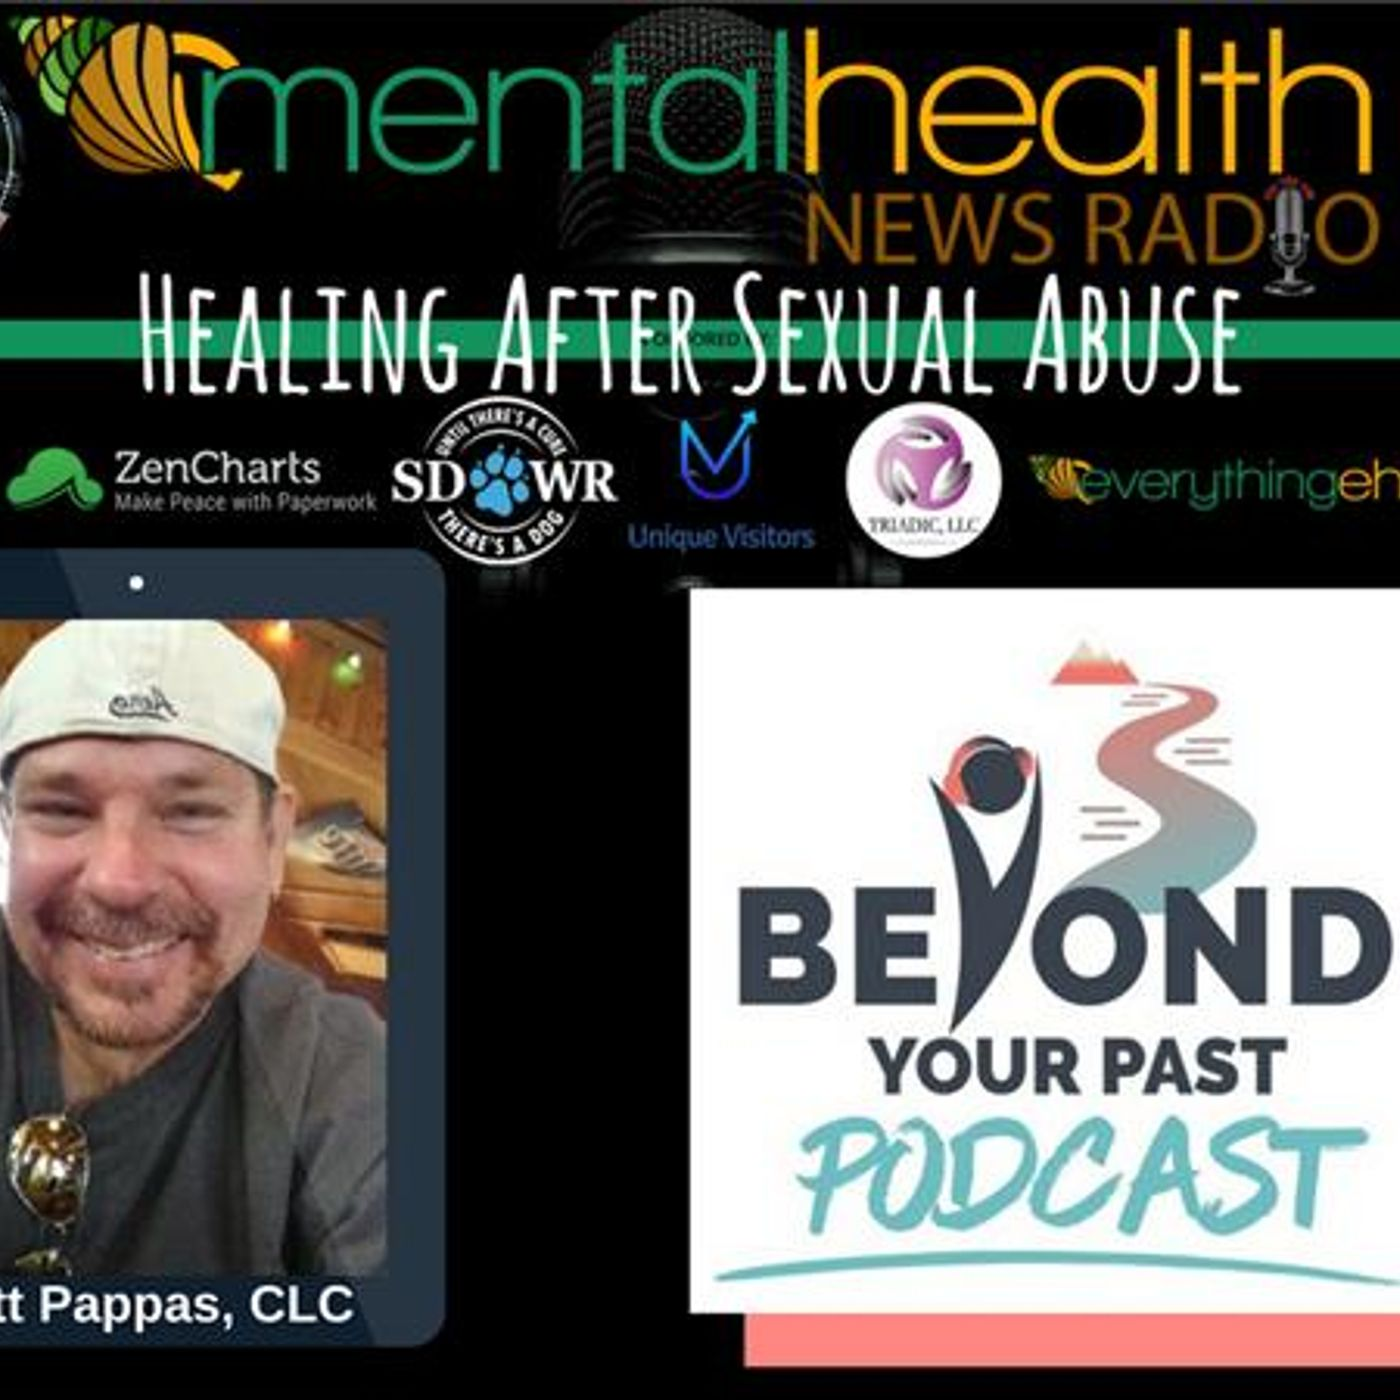 Mental Health News Radio - Beyond Your Past: Healing After Sexual Abuse with Matt Pappas